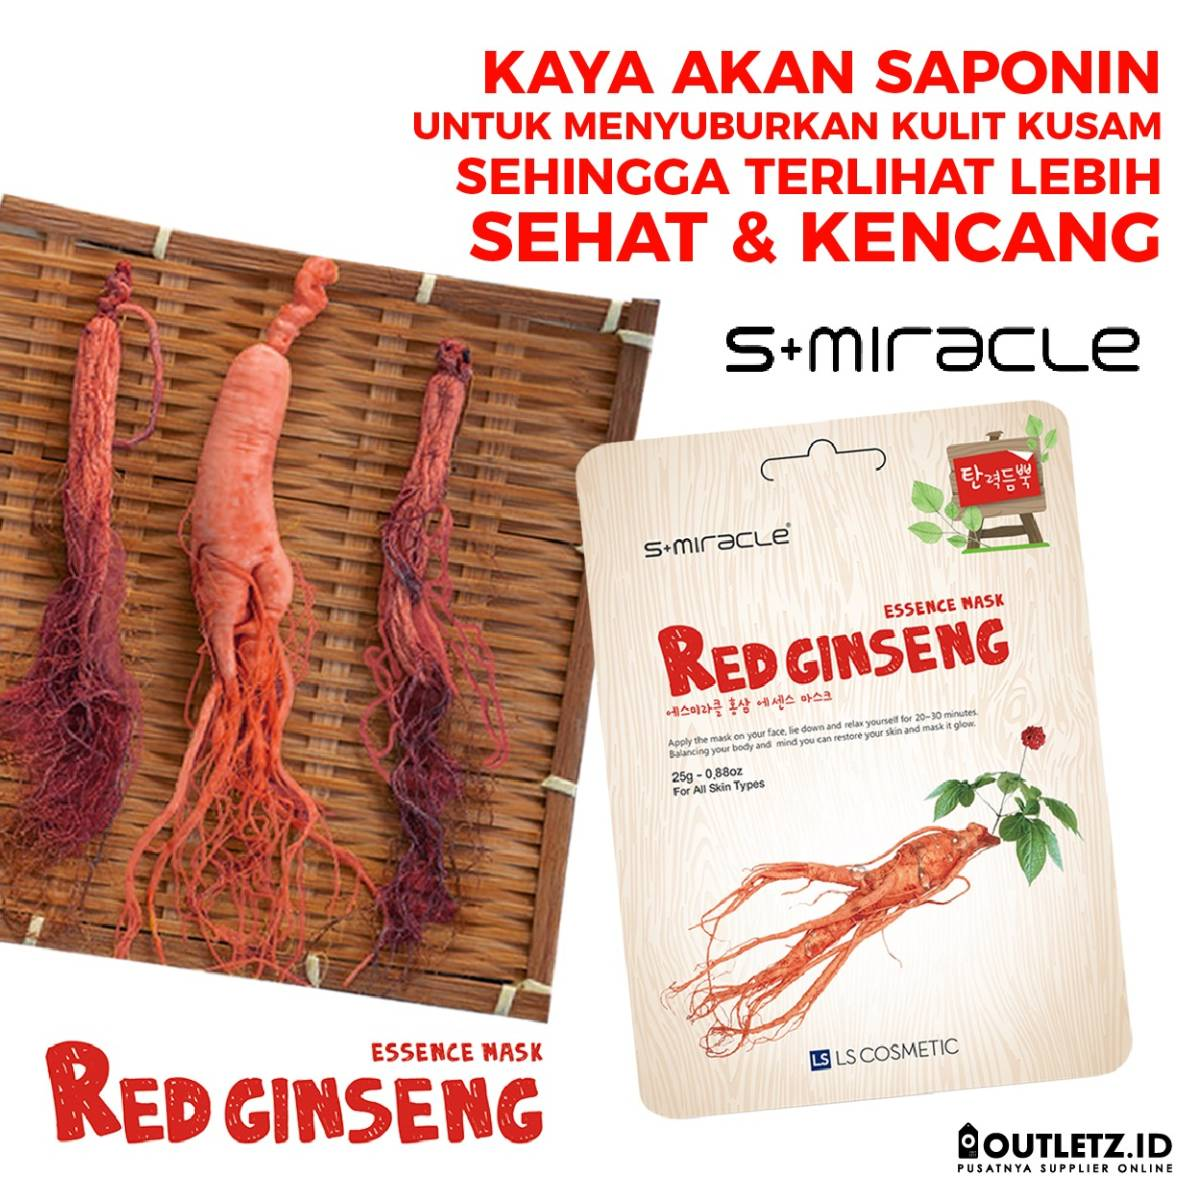 Masker Wajah Korea Red Gingseng - S+miracle Red Ginseng Essence Mask0